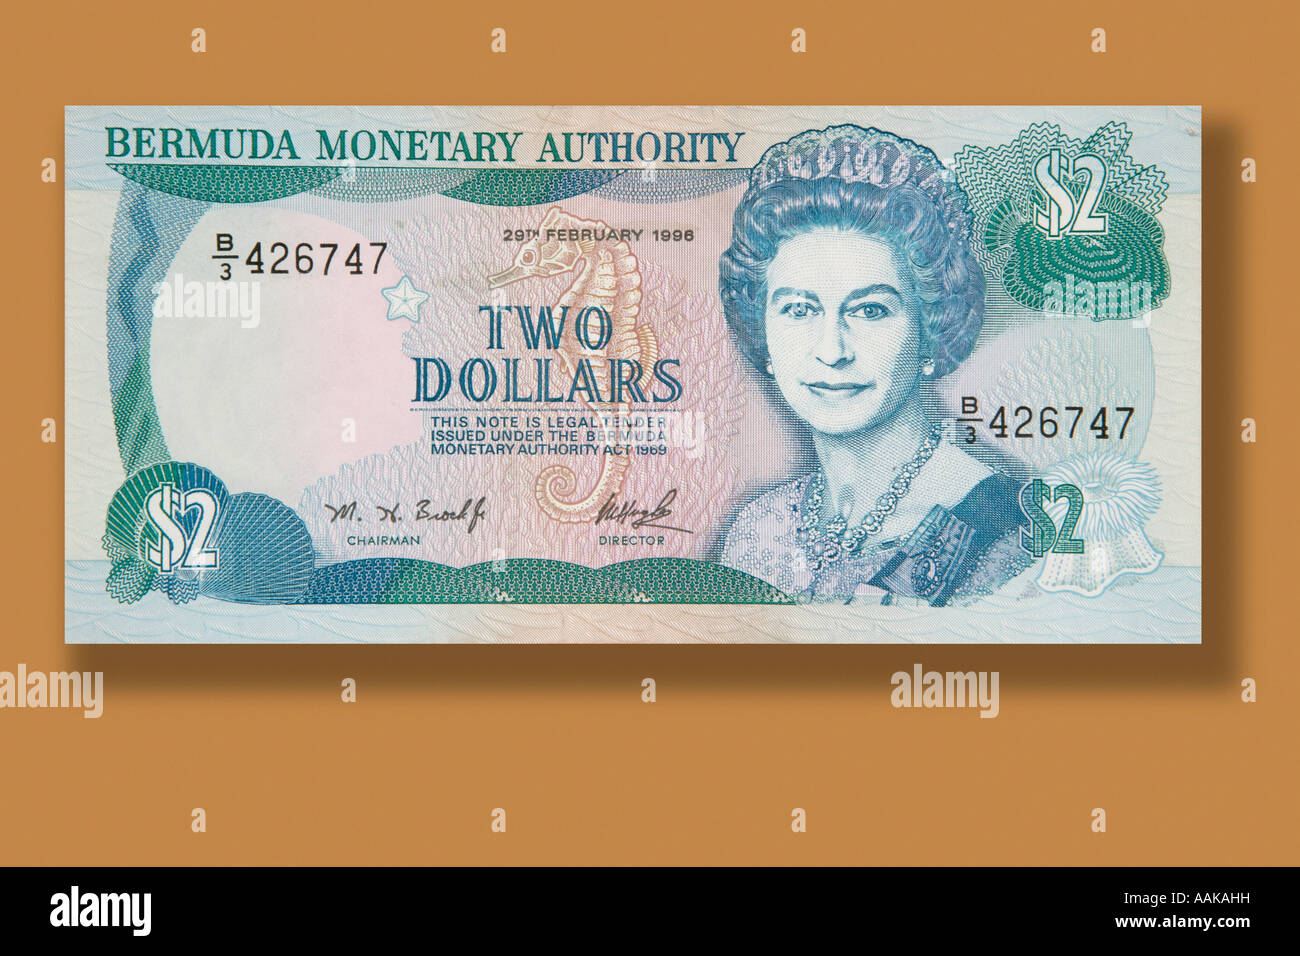 2 dollar bill paper money from the Island nation of Bermuda